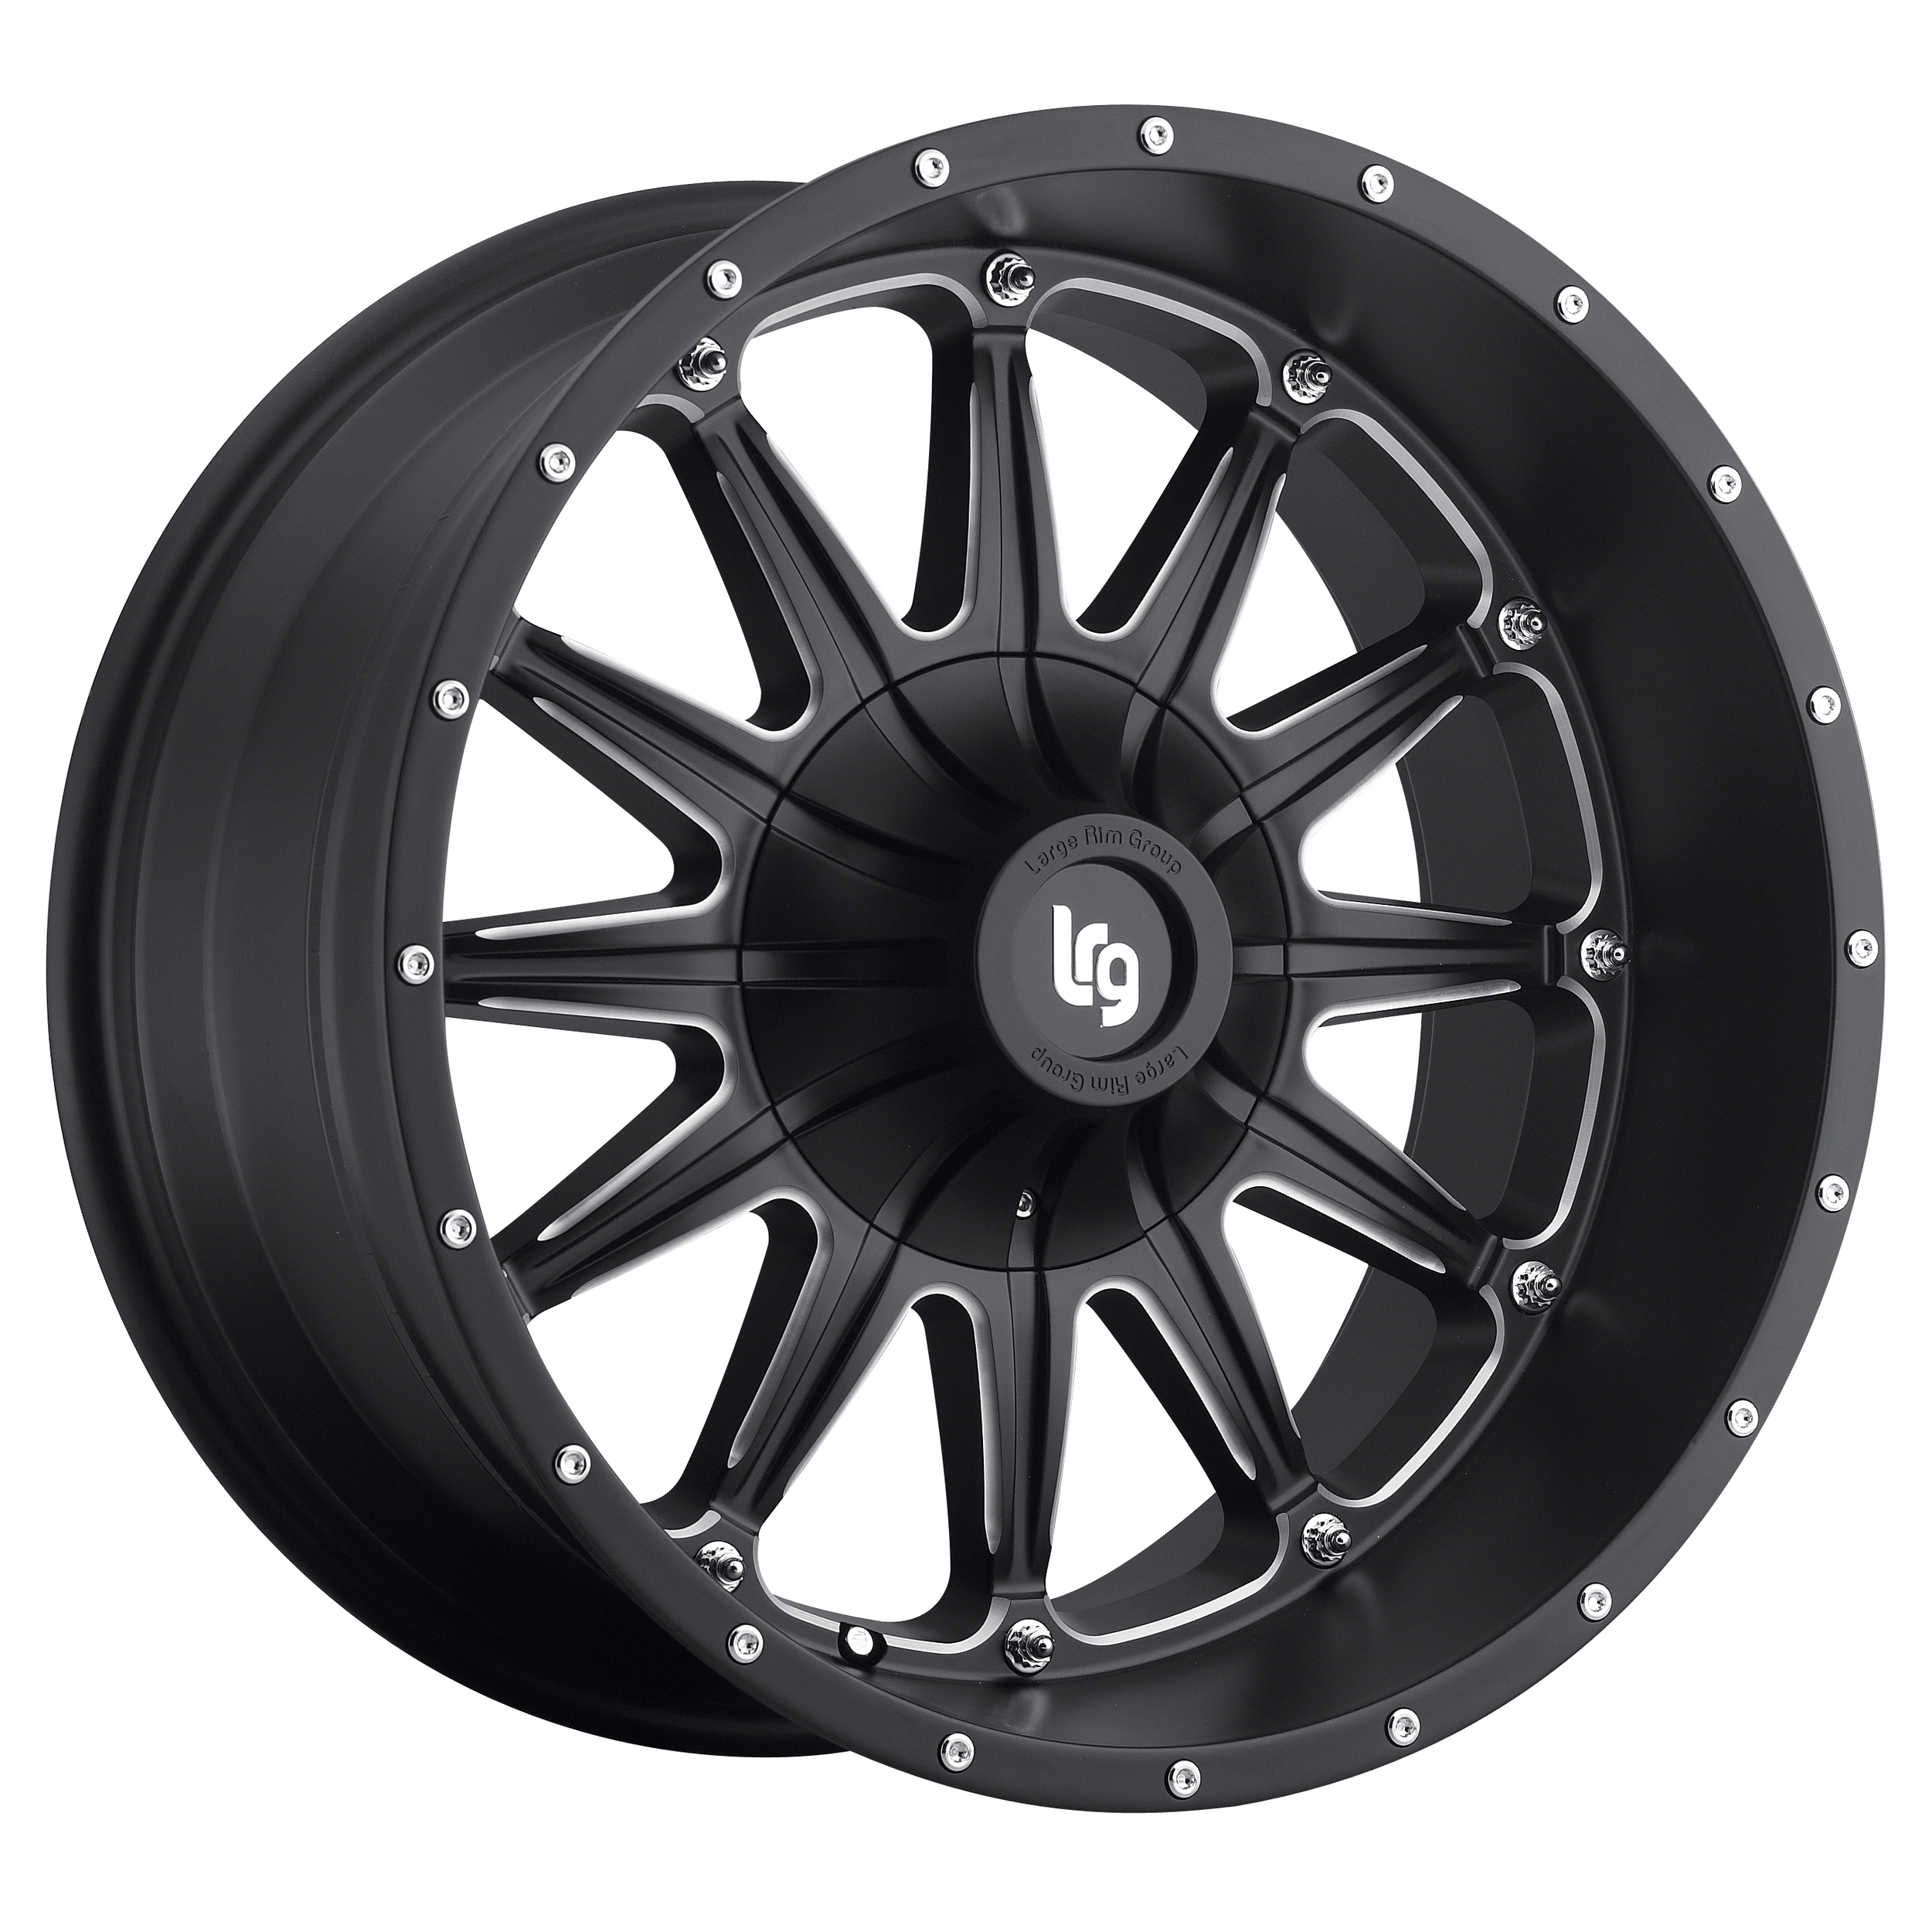 LRG Rims Series 103 Black Machined Wheels